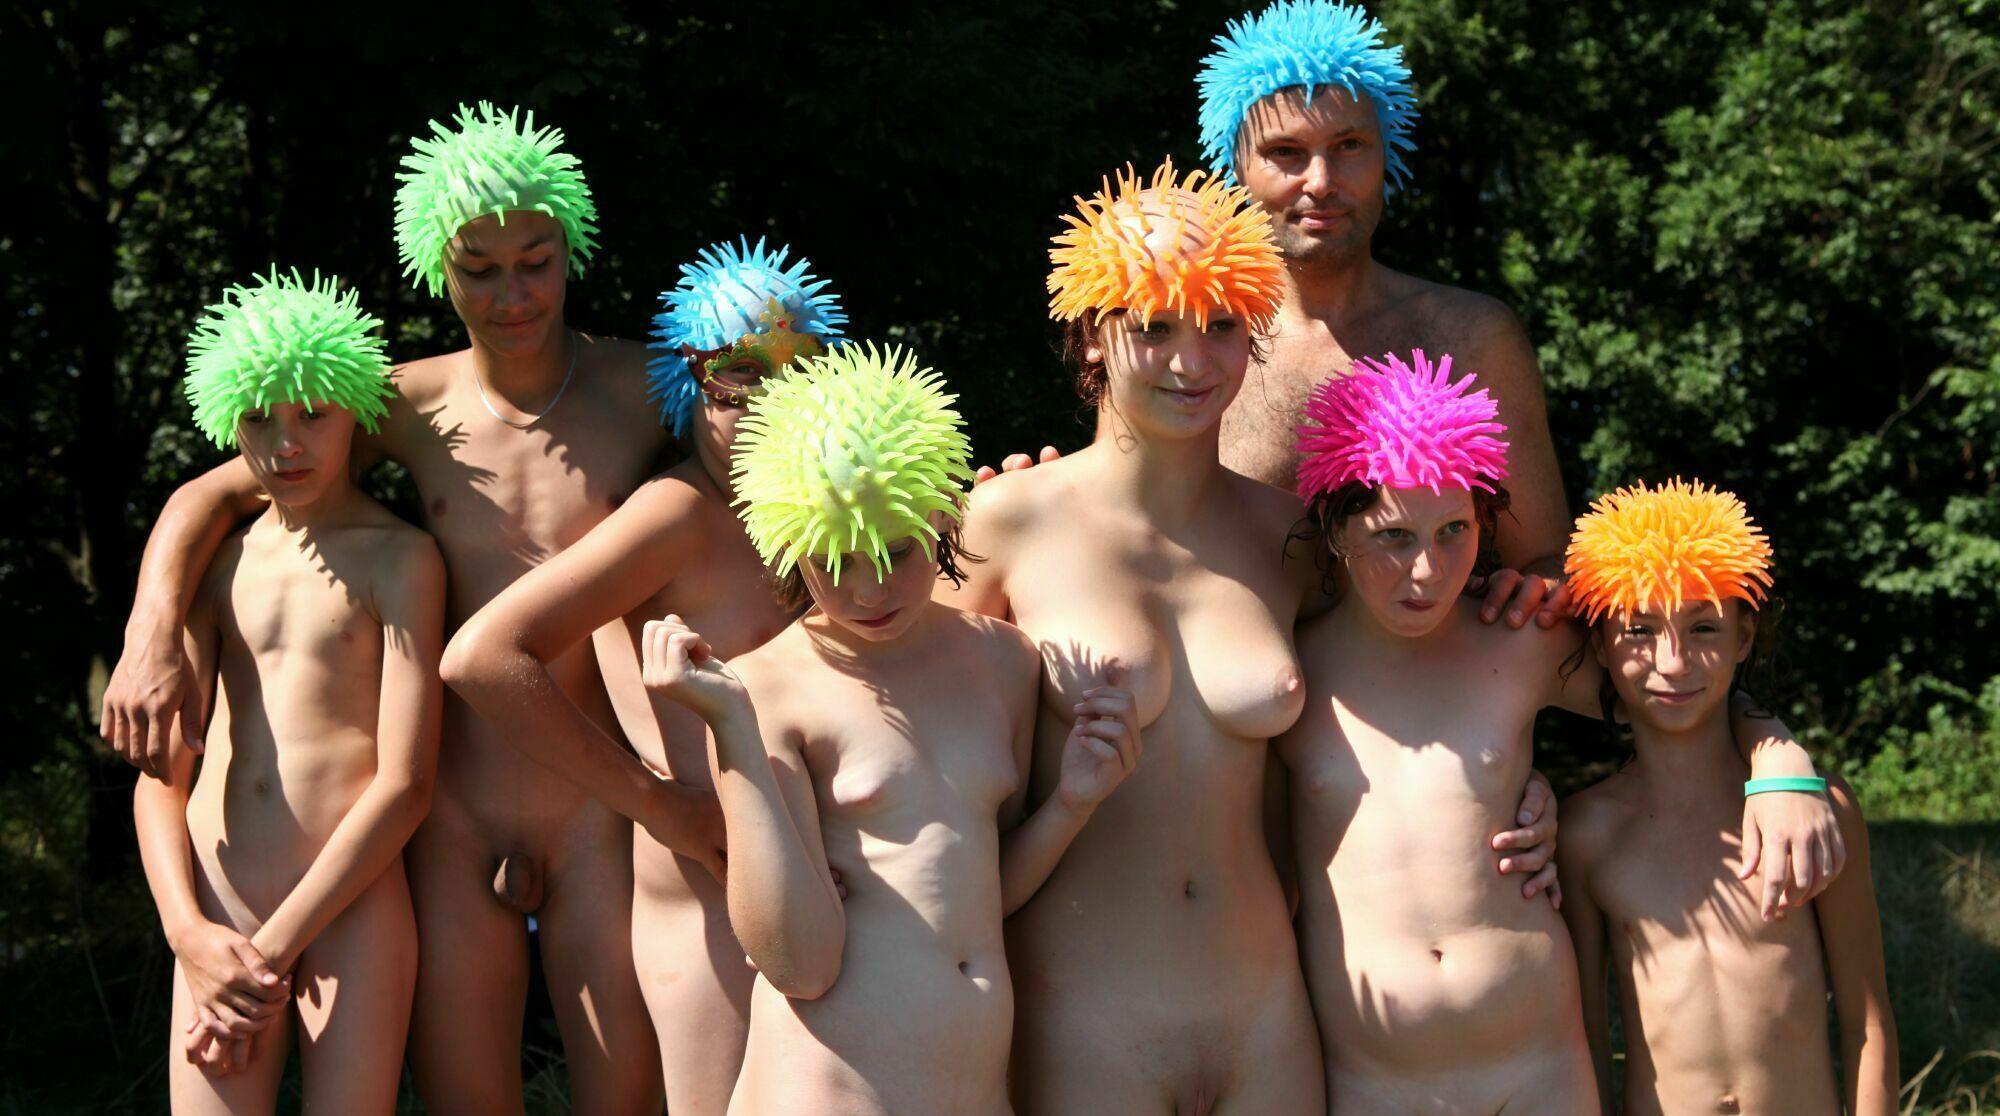 Photo family nudist - Outdoor Picnic